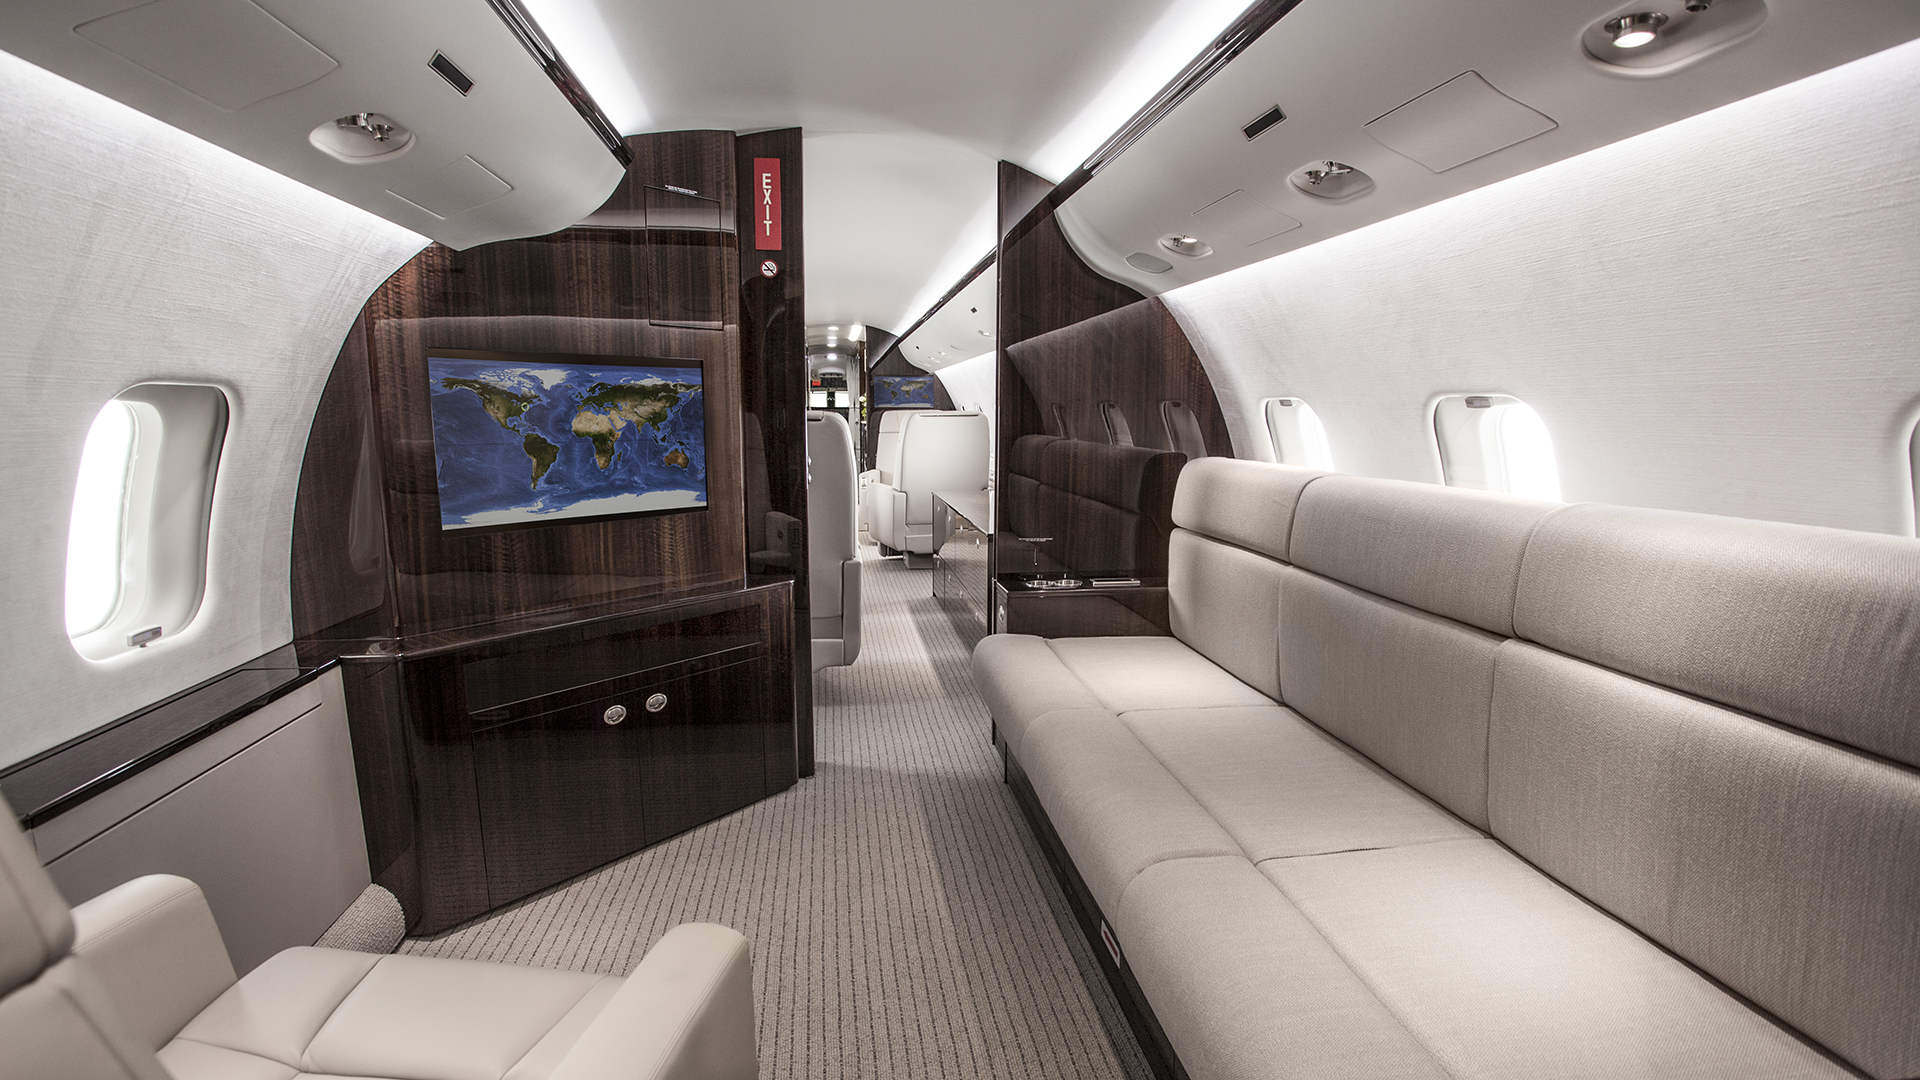 A business jet interior